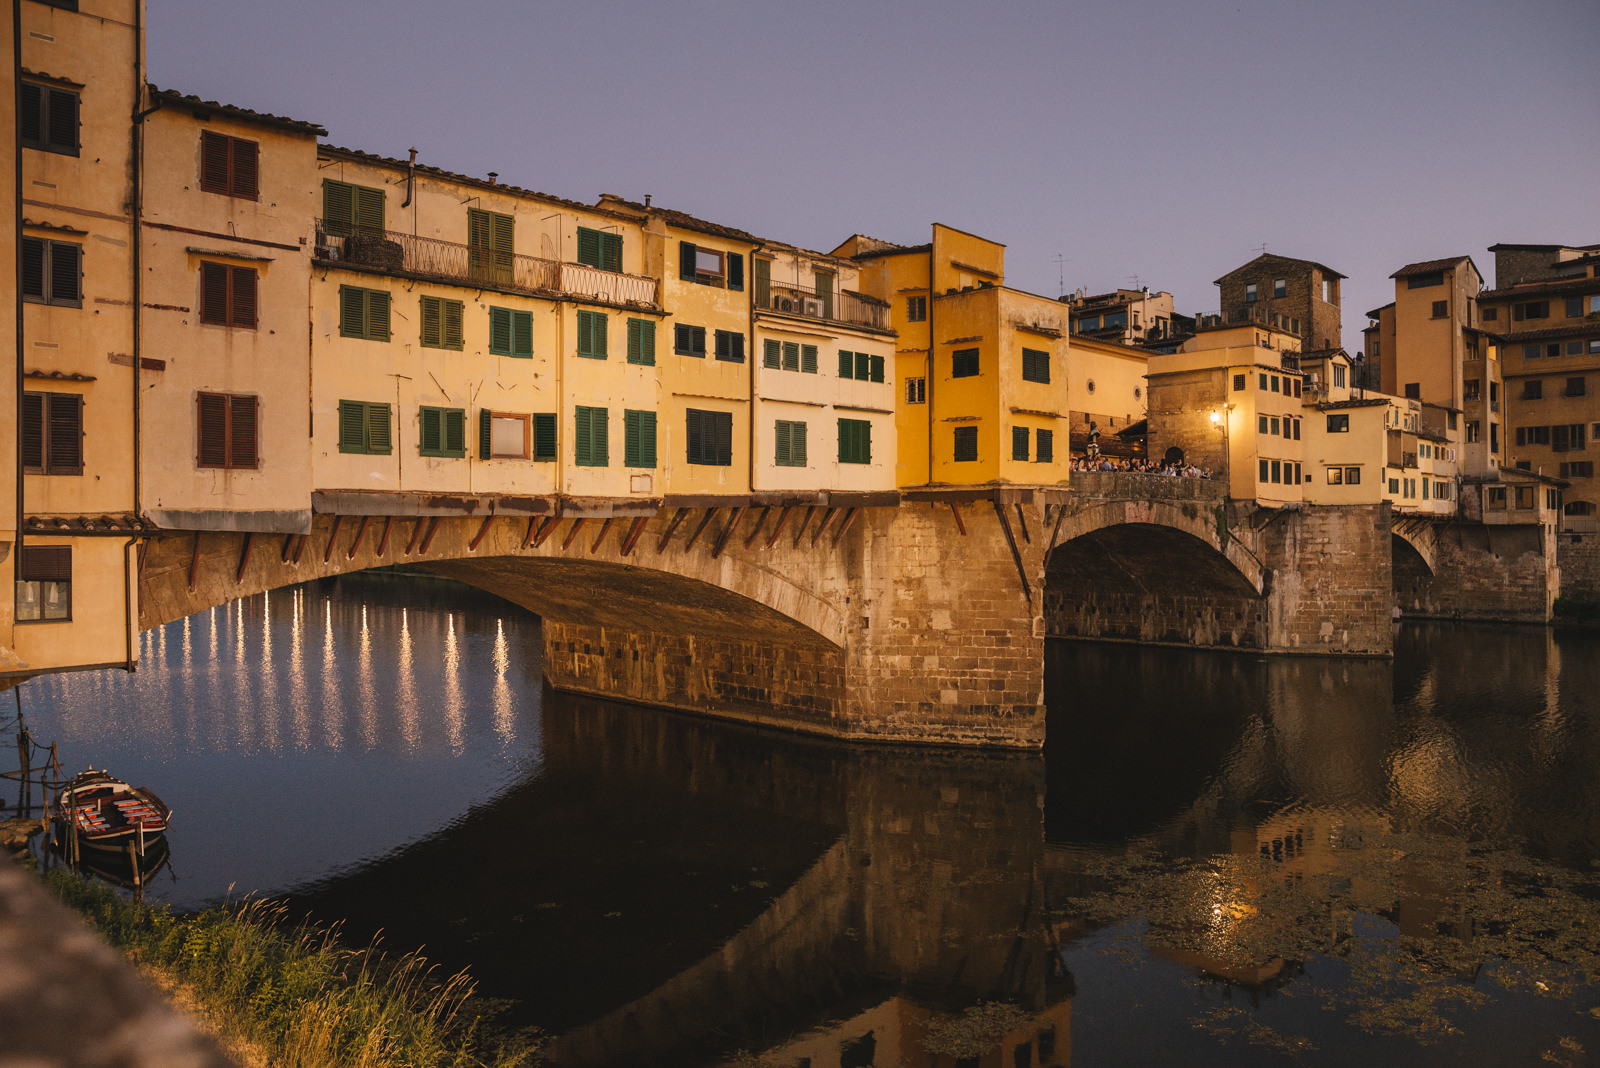 The Ponte Vecchio in Firenze